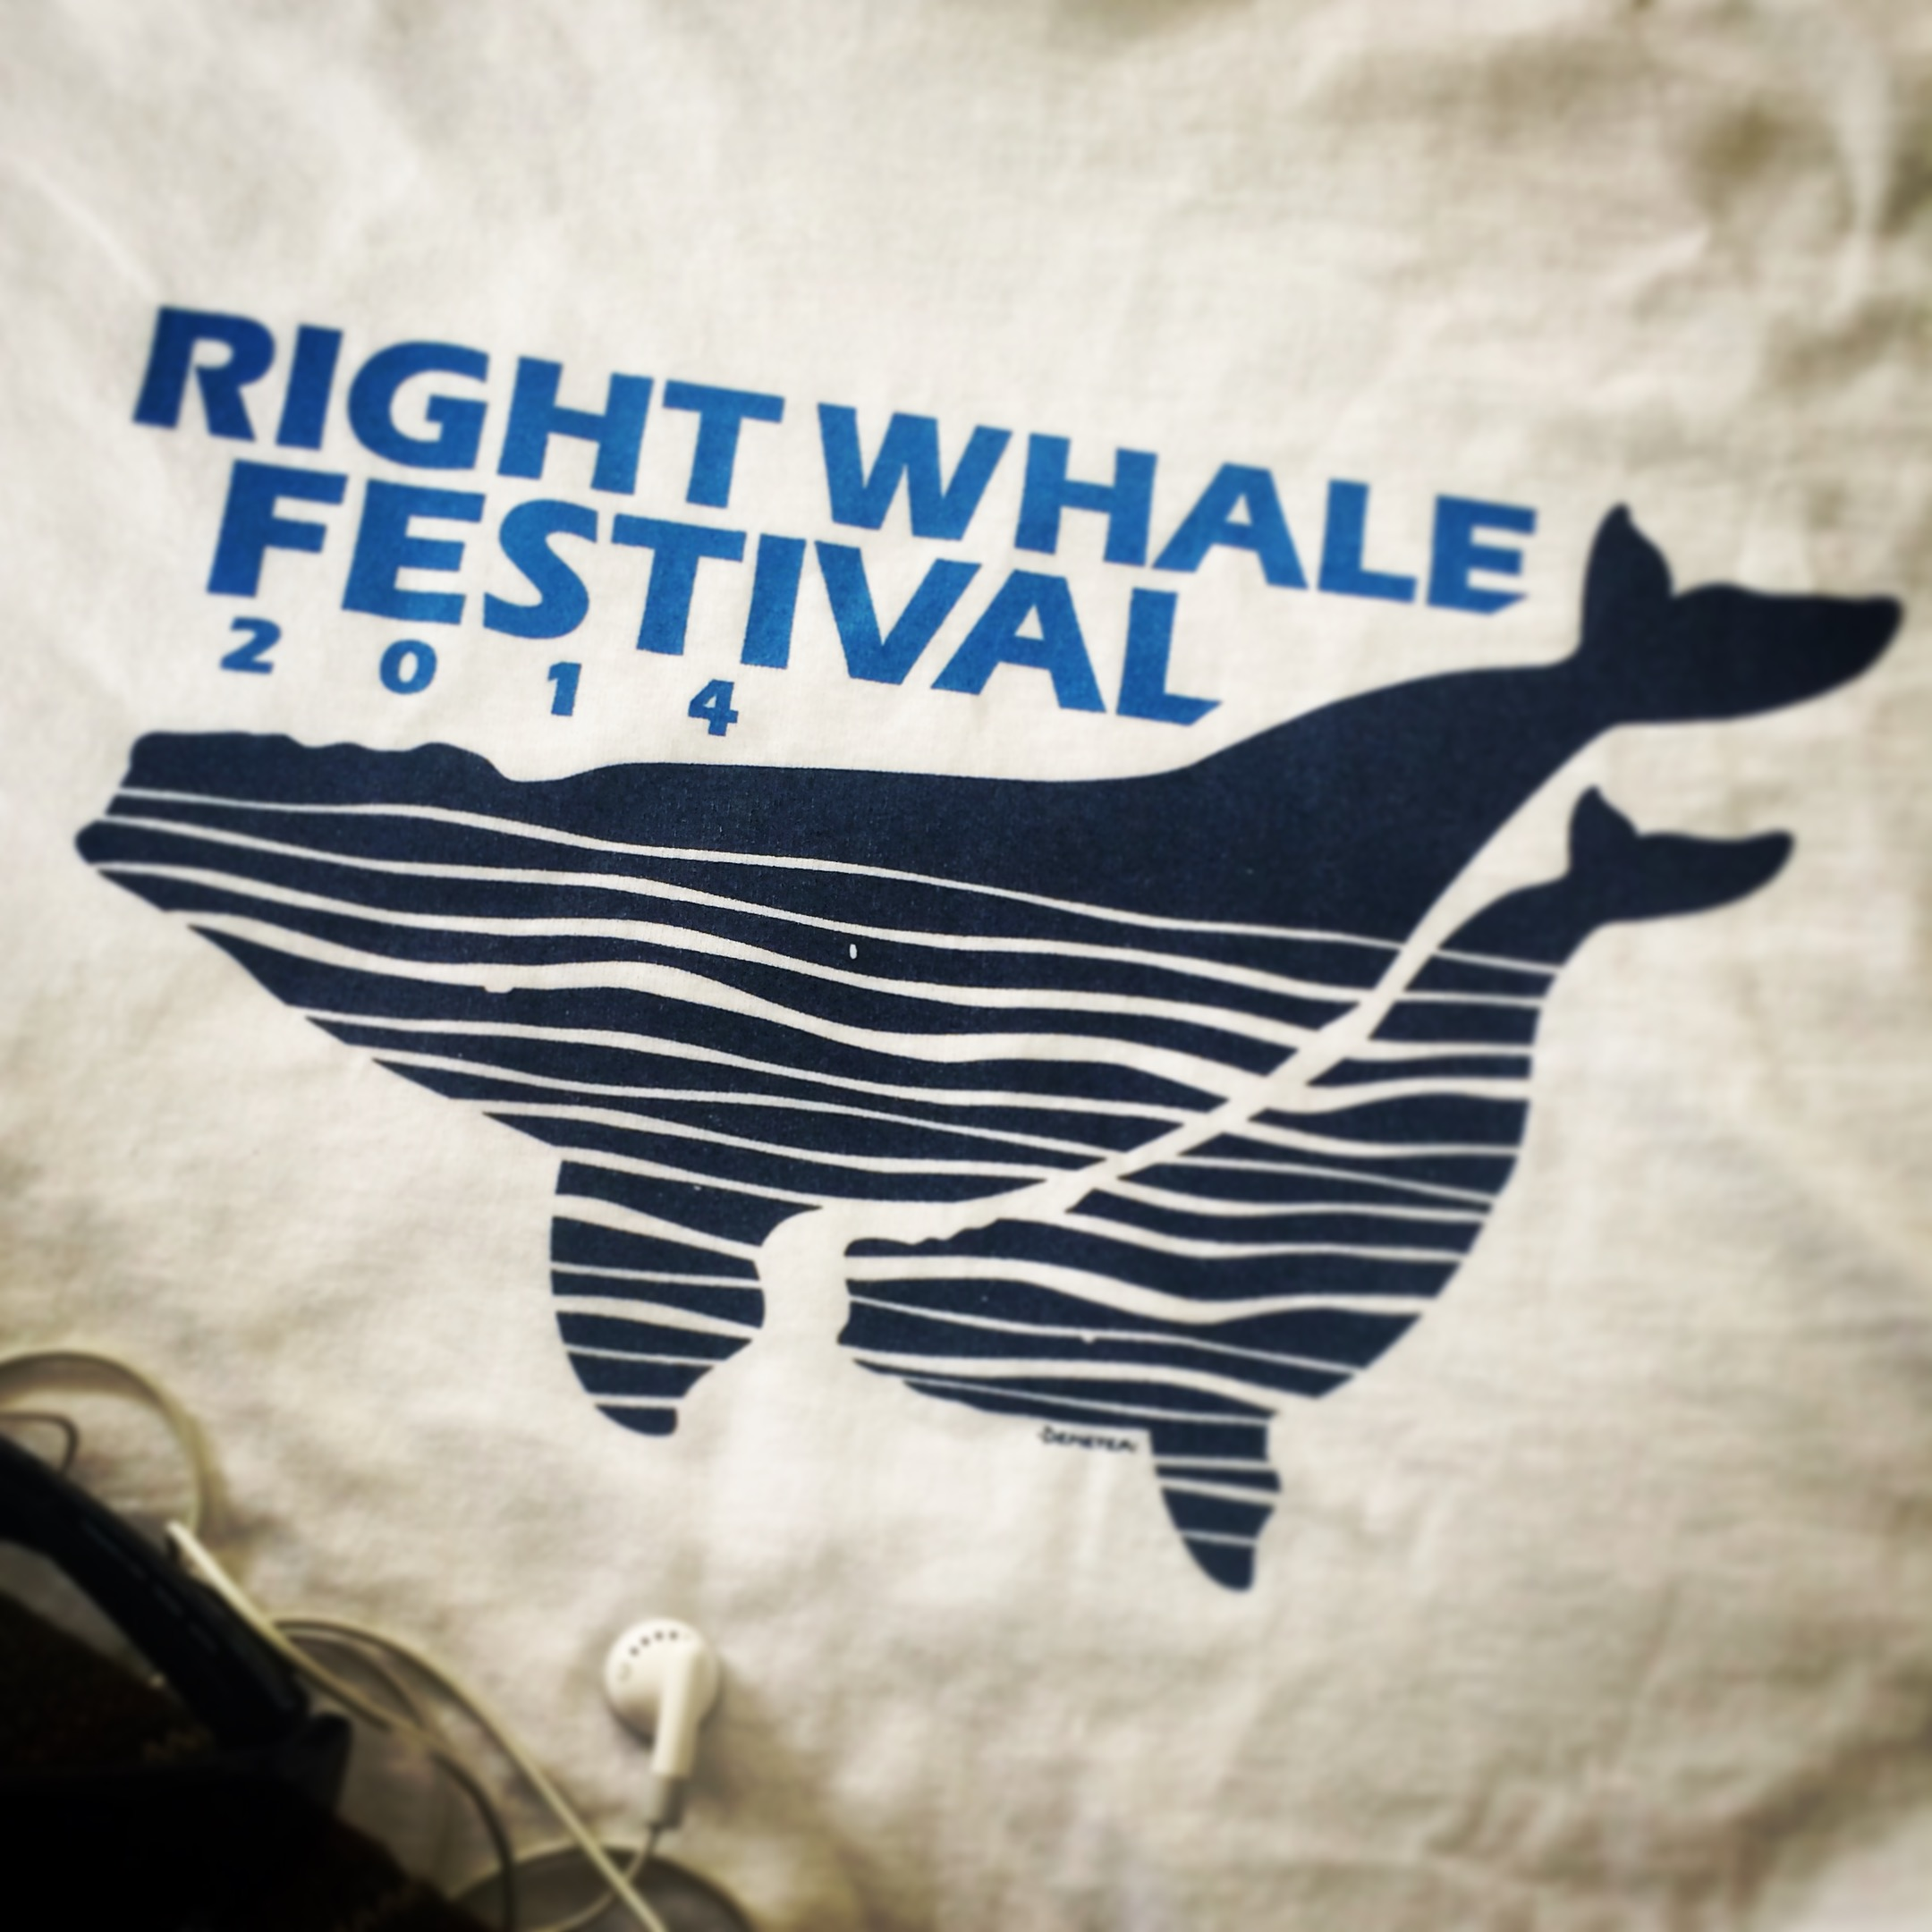 Right Whale Festival 2014 t-shirt artwork